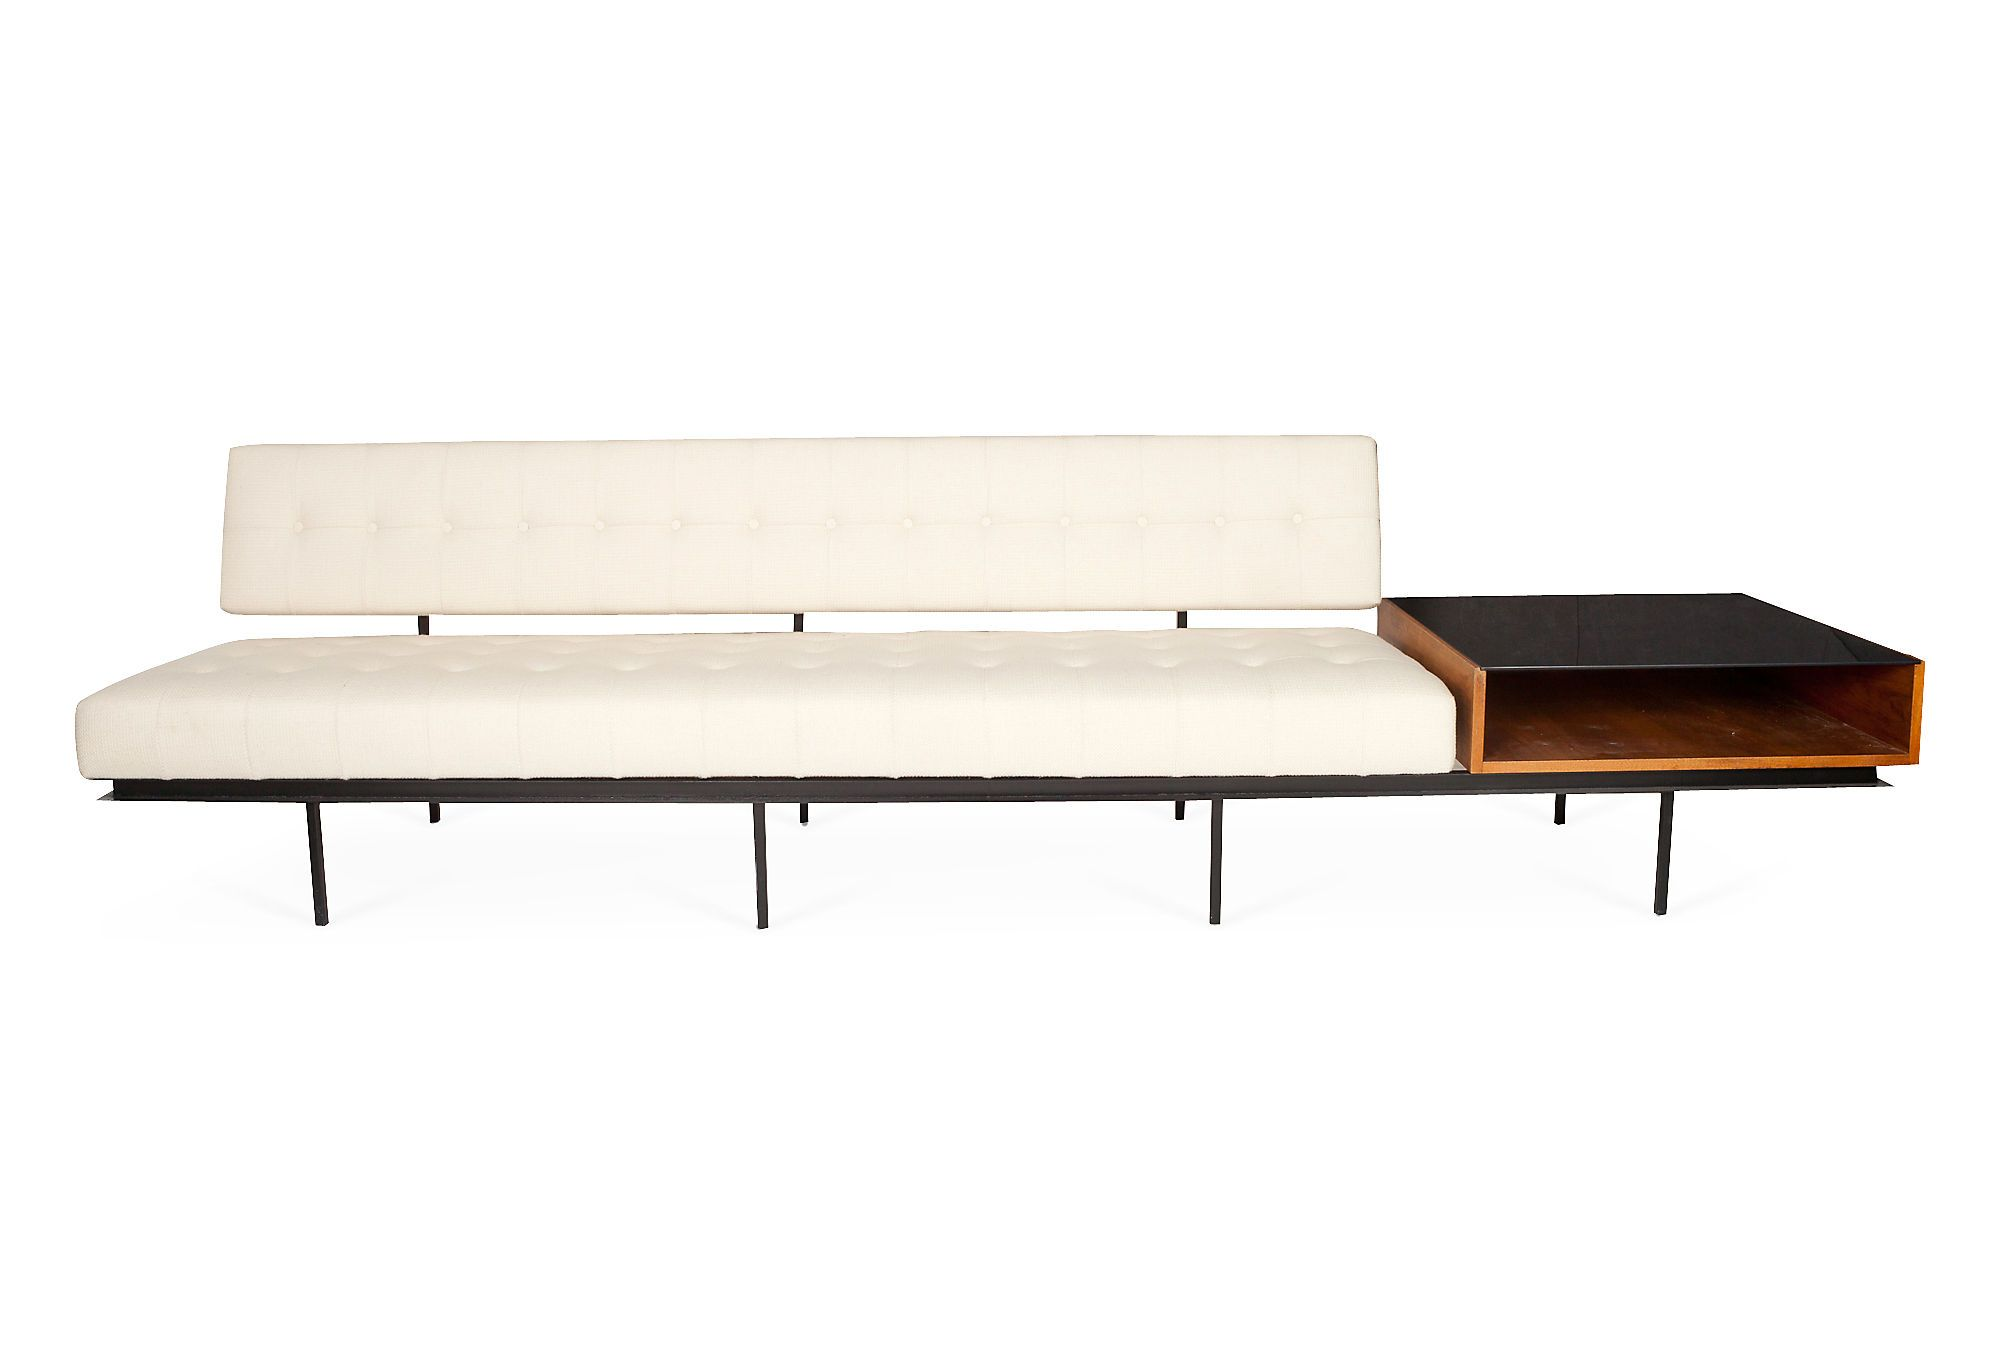 Obsessed one kings lane lawrence converso florence knoll sofa w one kings lane lawrence converso florence knoll sofa wend table watchthetrailerfo